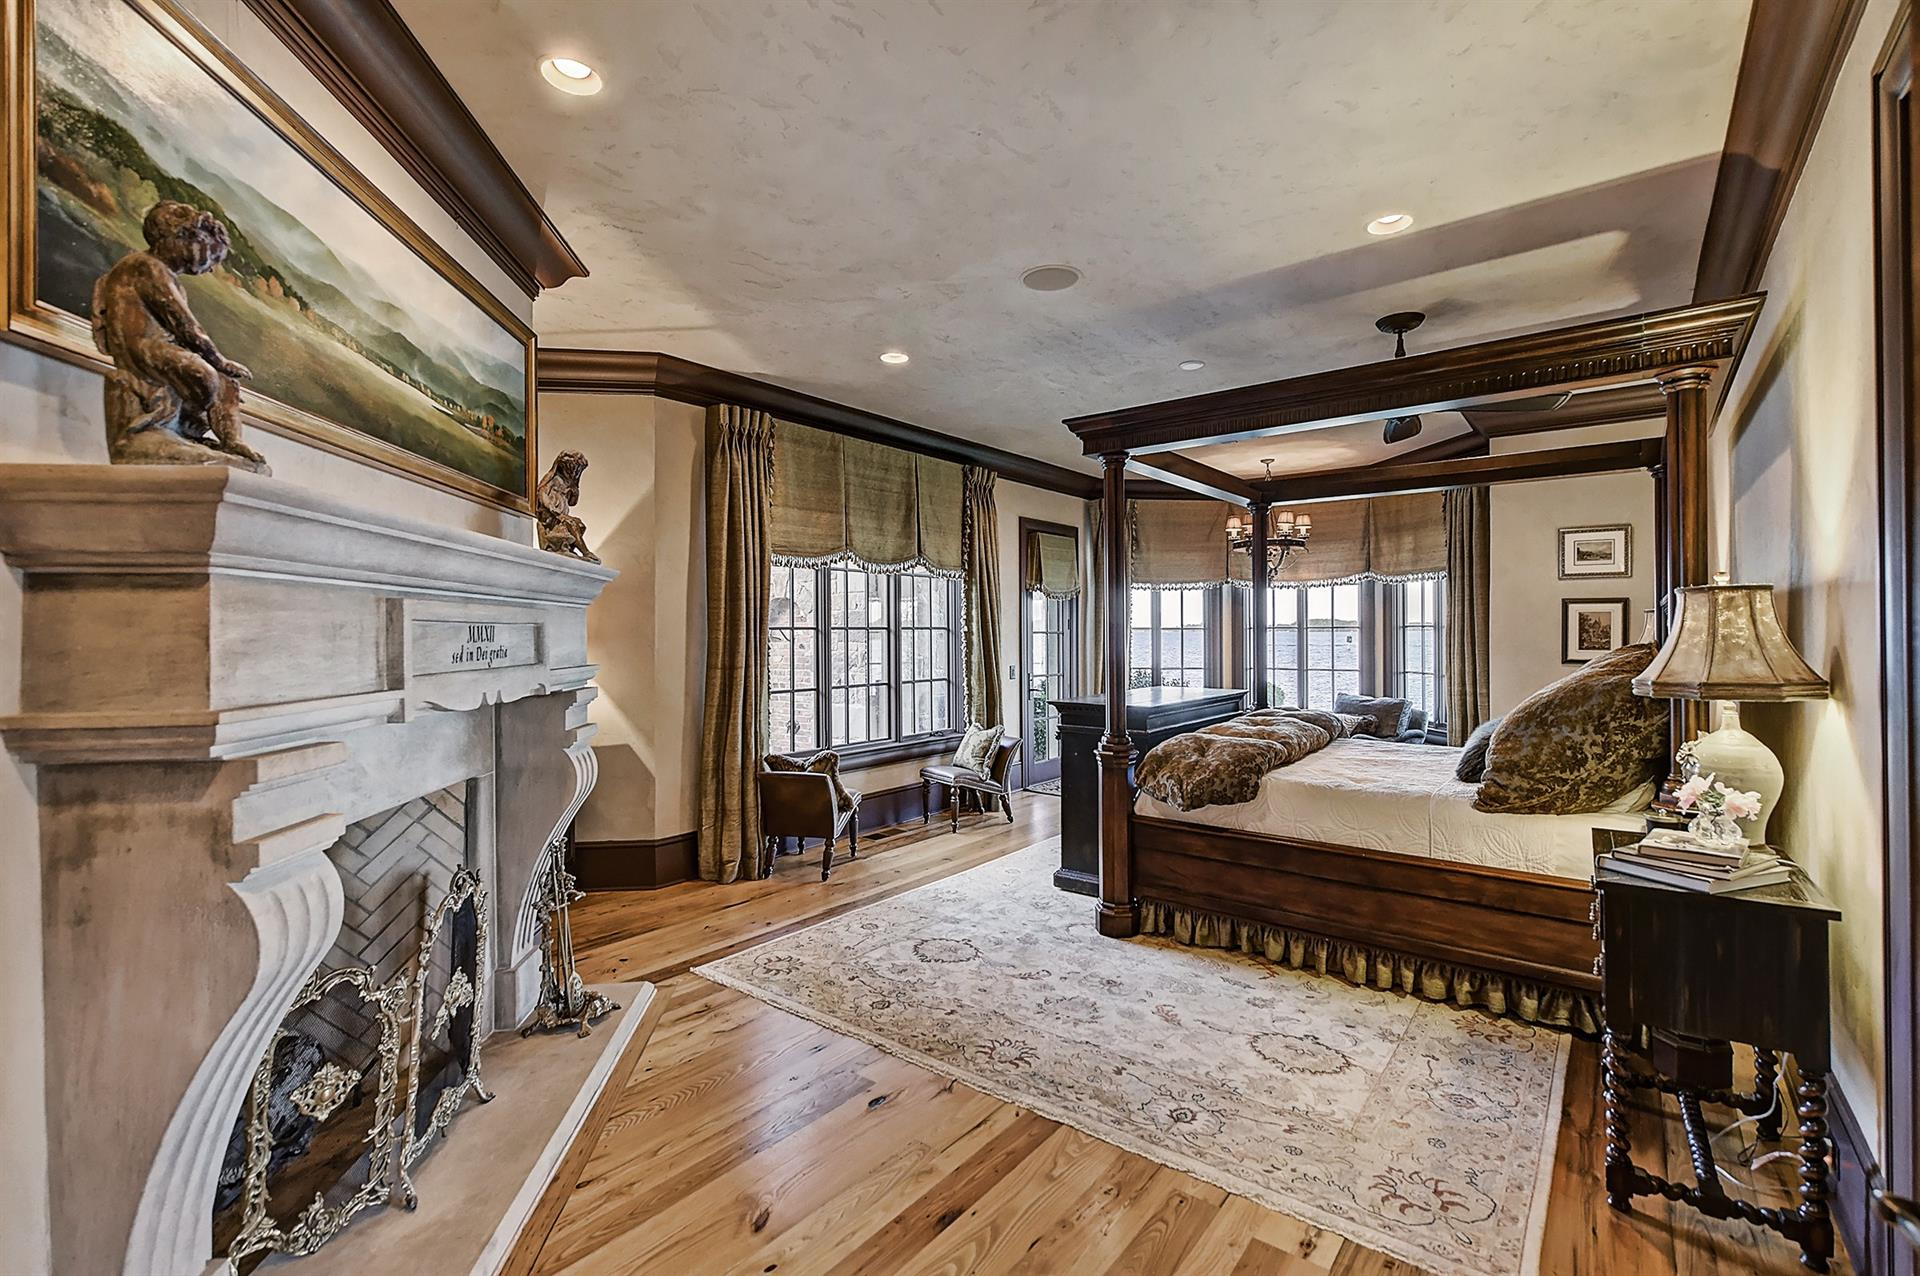 Lake Norman Waterfront Estate: a luxury home for sale in Denver, Lincoln  County , North Carolina - Property ID:3388984 | Christie's International  Real